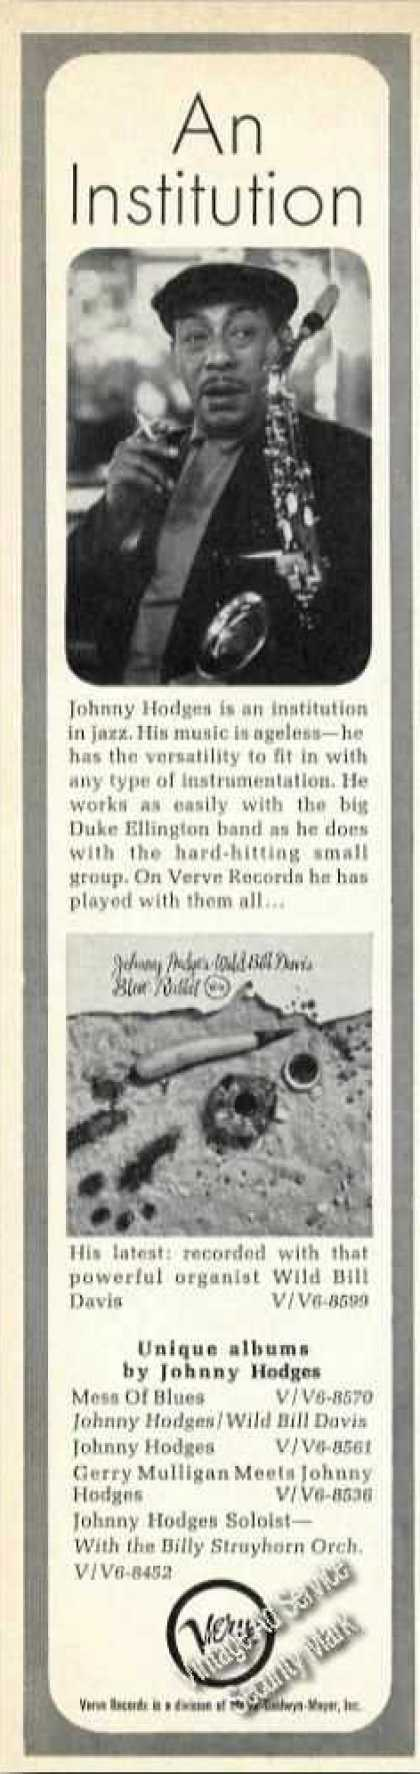 Johnny Hodges Photo Album Promo Promo (1964)